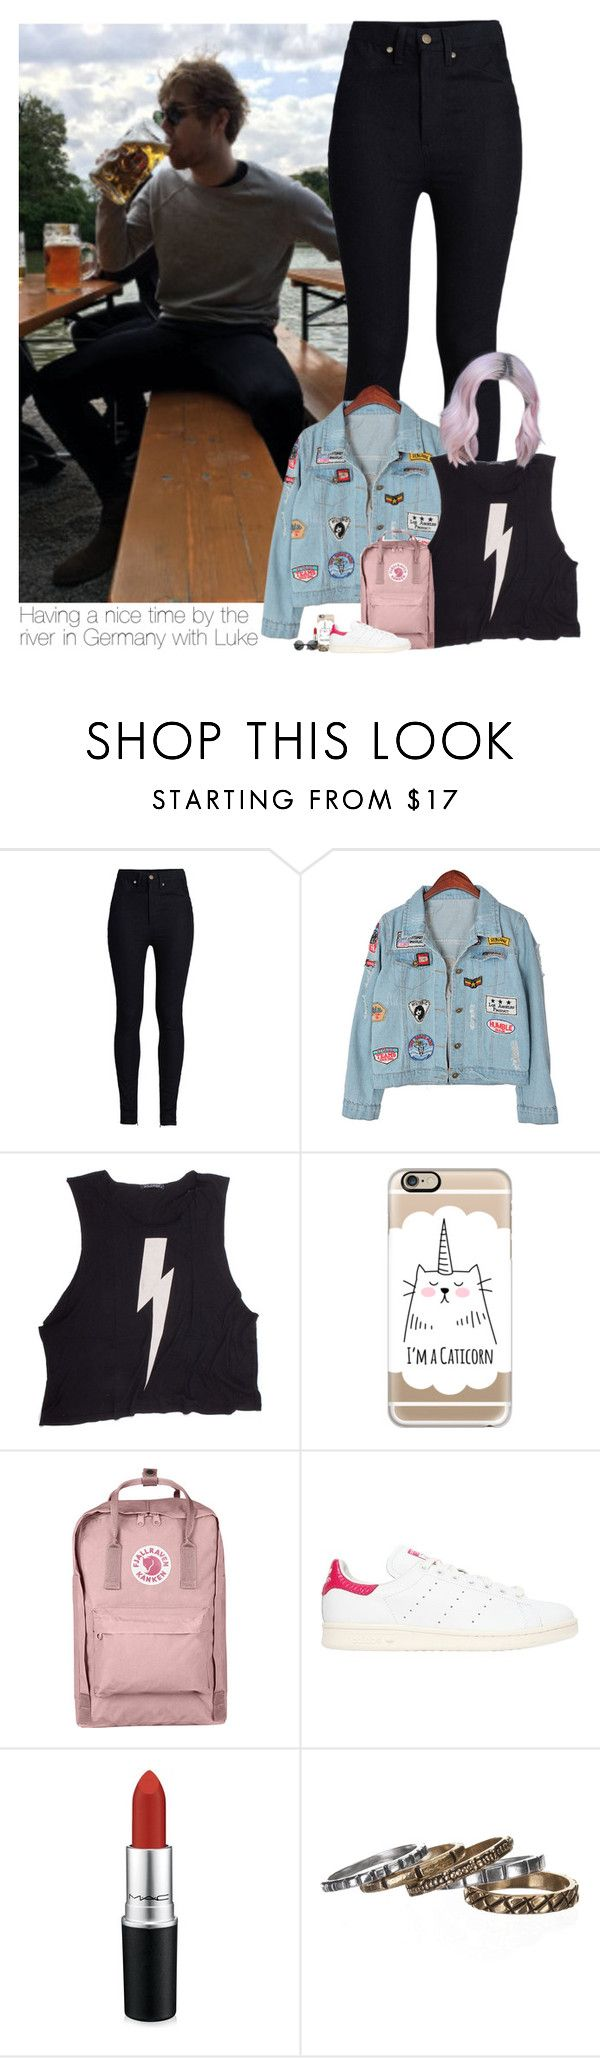 """""""Having a nice time by the river in Germany with Luke"""" by heslovely ❤ liked on Polyvore featuring Rodarte, Chicnova Fashion, Wildfox, Casetify, Fjällräven, adidas Originals, MAC Cosmetics and Waxing Poetic"""